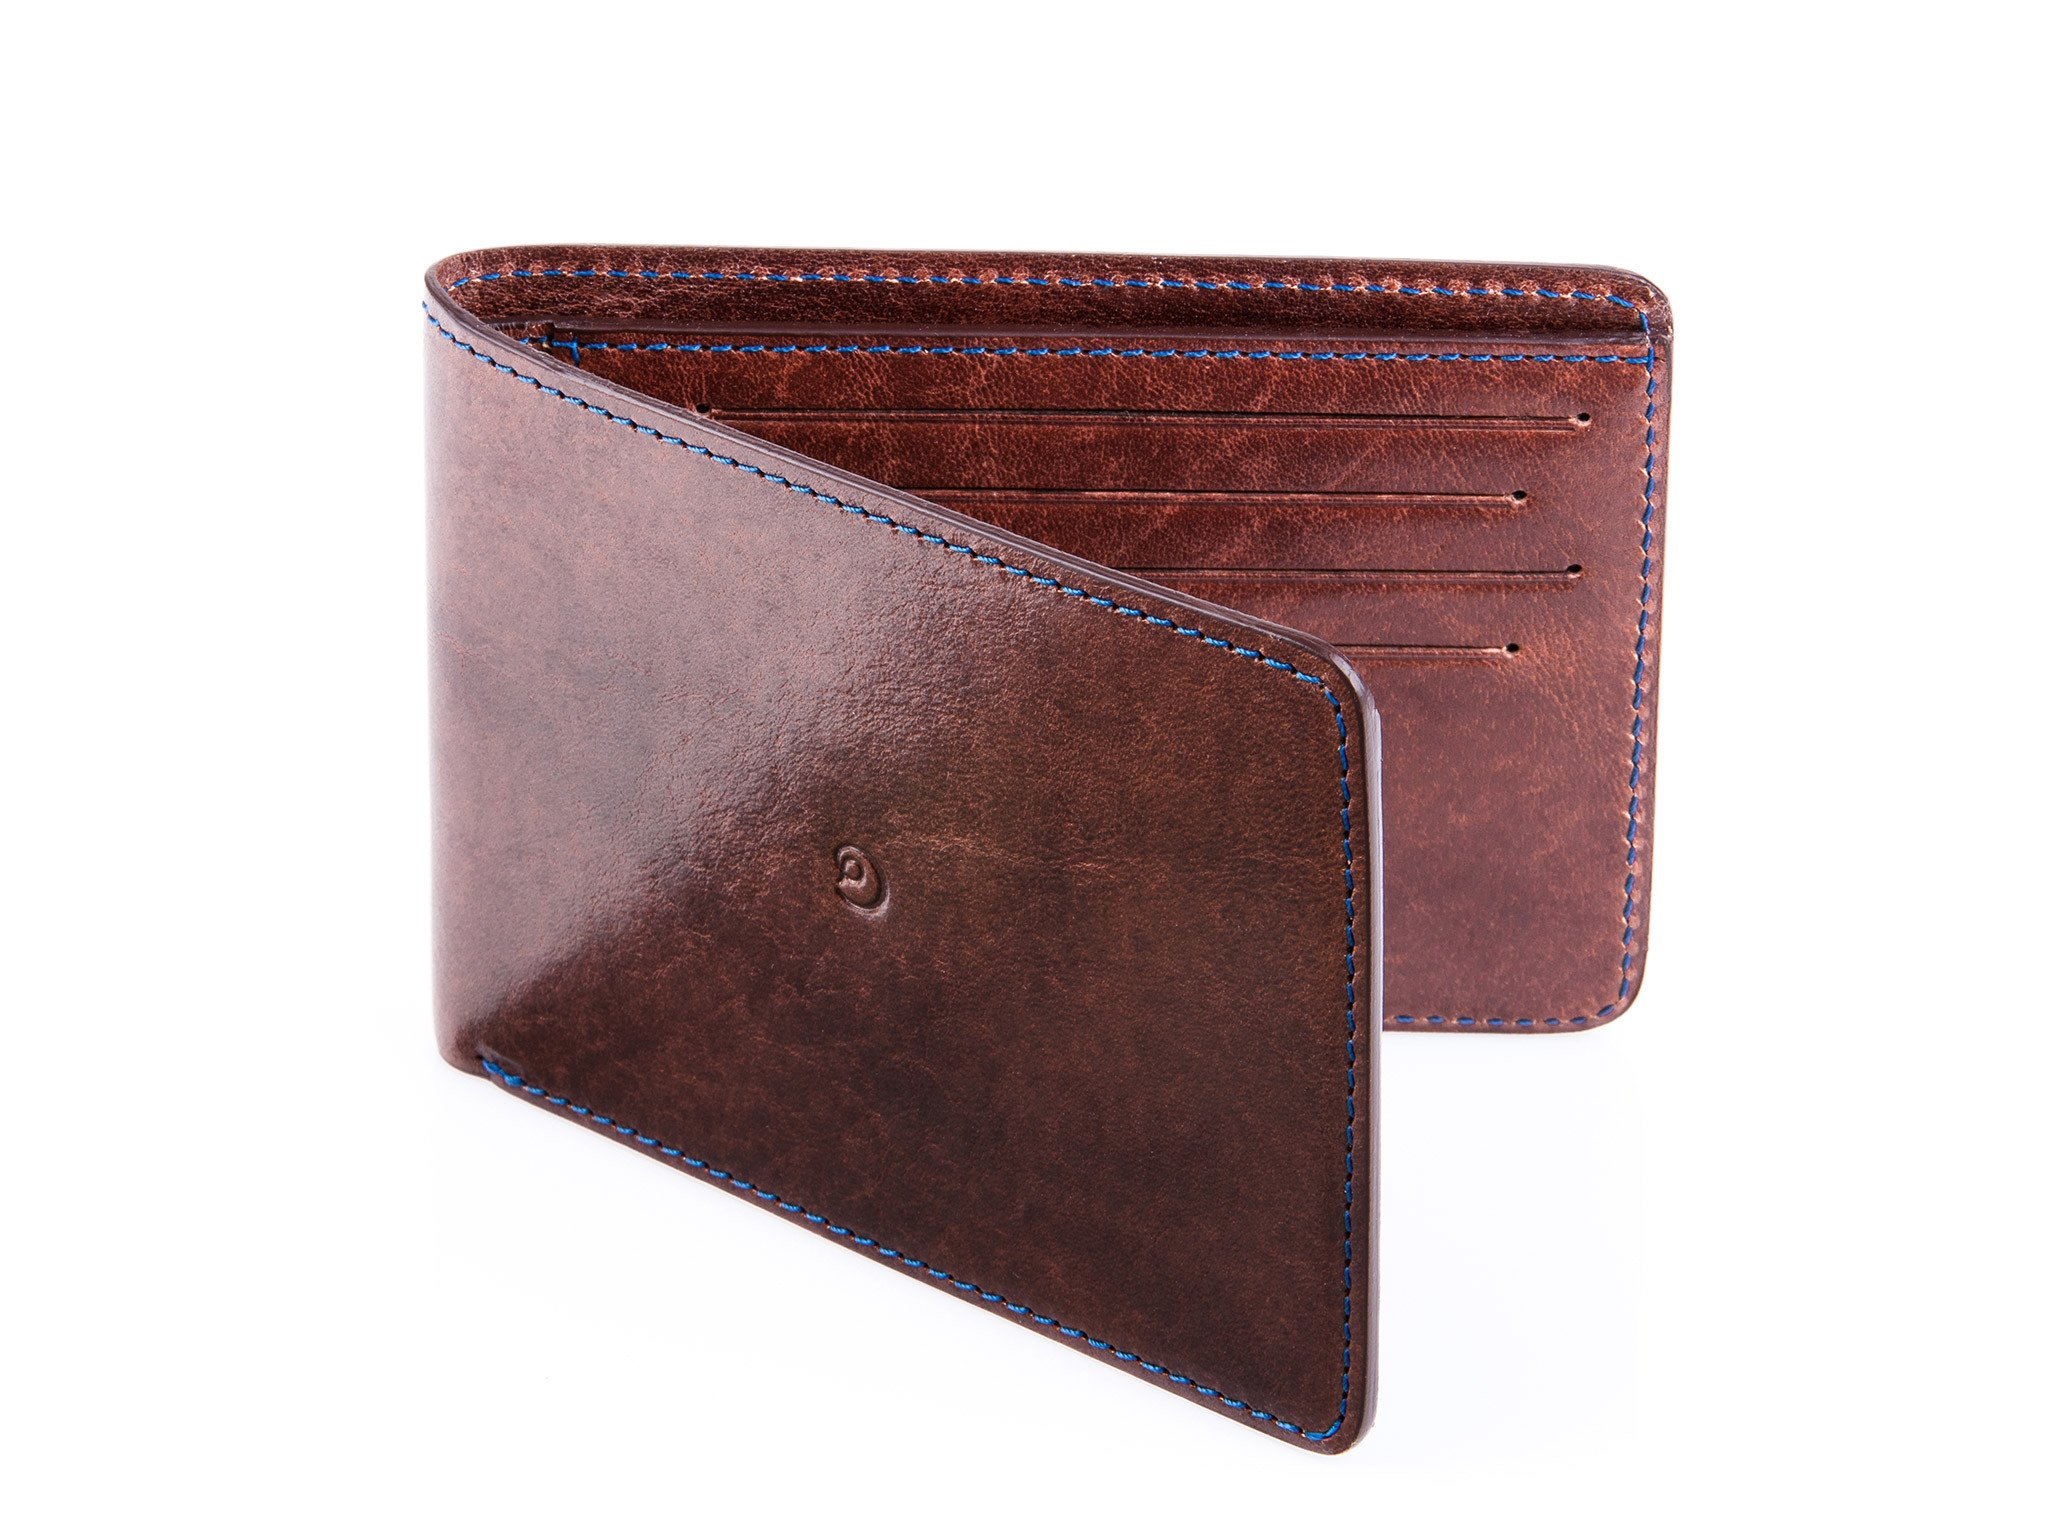 Slim leather wallet dark brown by Danny P.